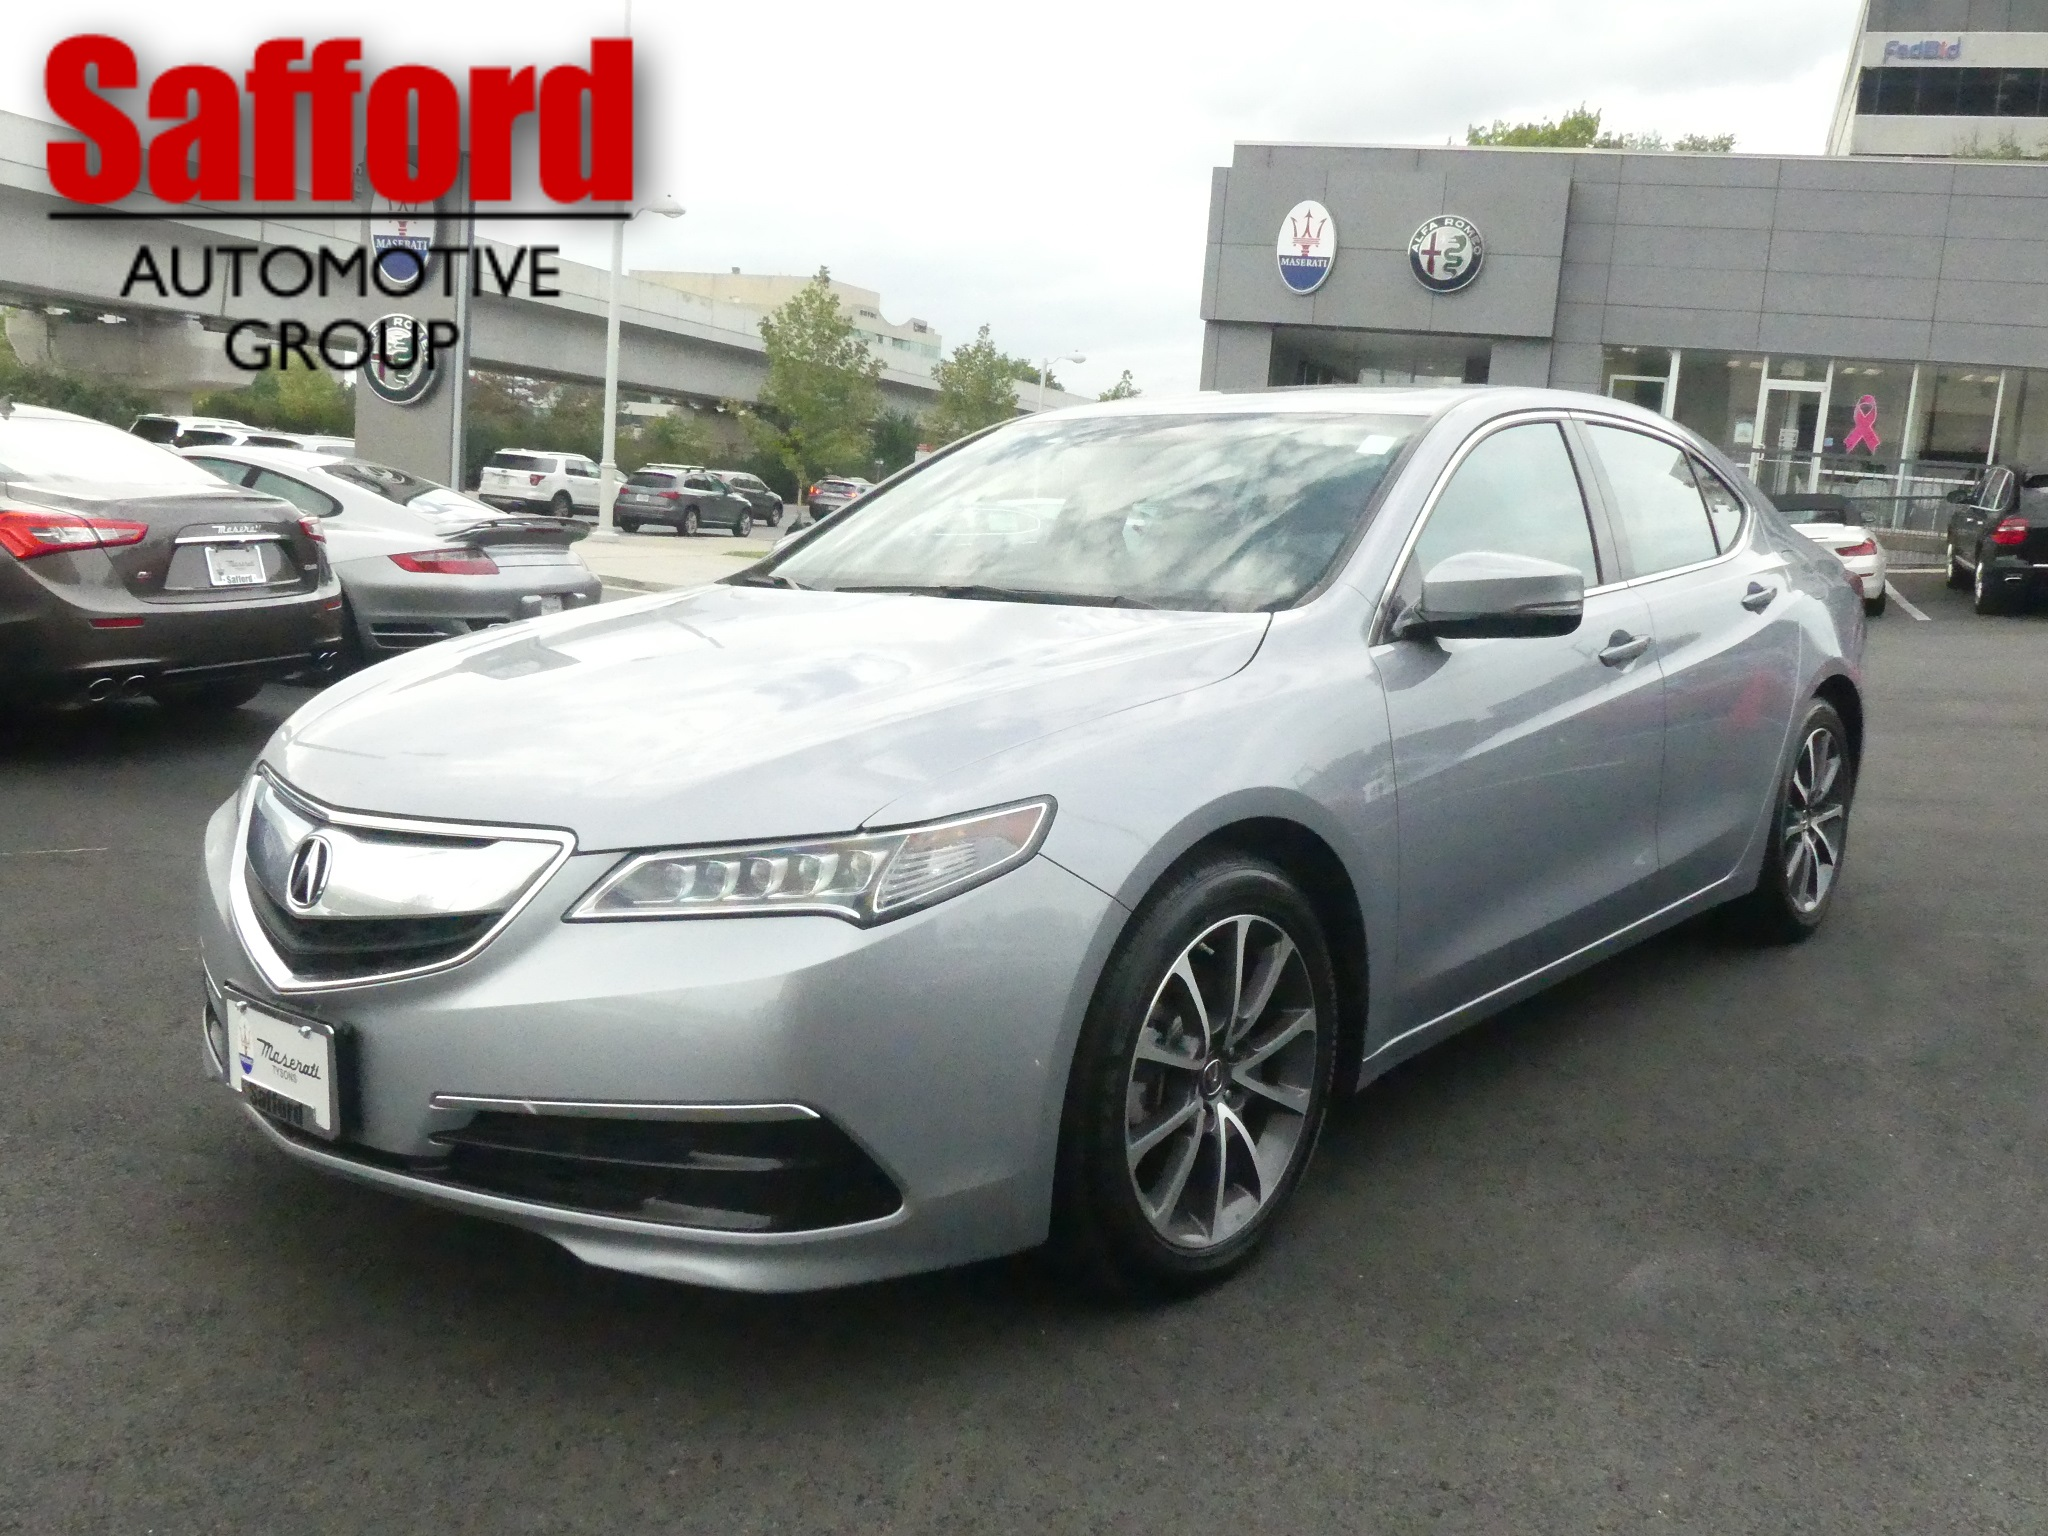 Pre Owned 2008 Acura TSX 4dr Car in Warrenton A